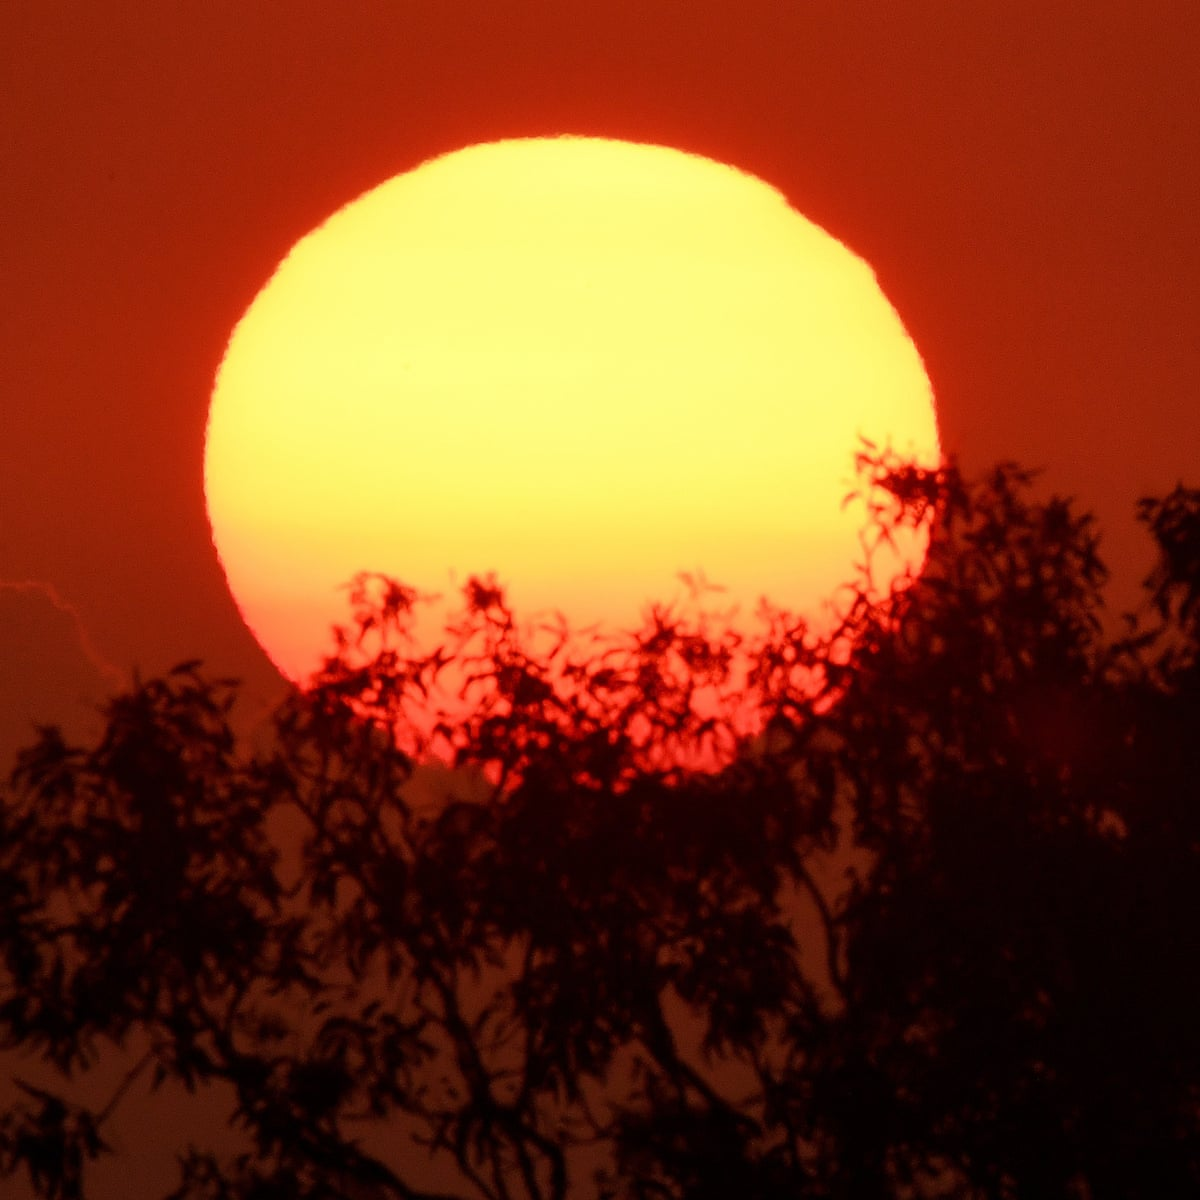 Potentially Fatal Bouts Of Heat And Humidity On The Rise Study Finds Environment The Guardian